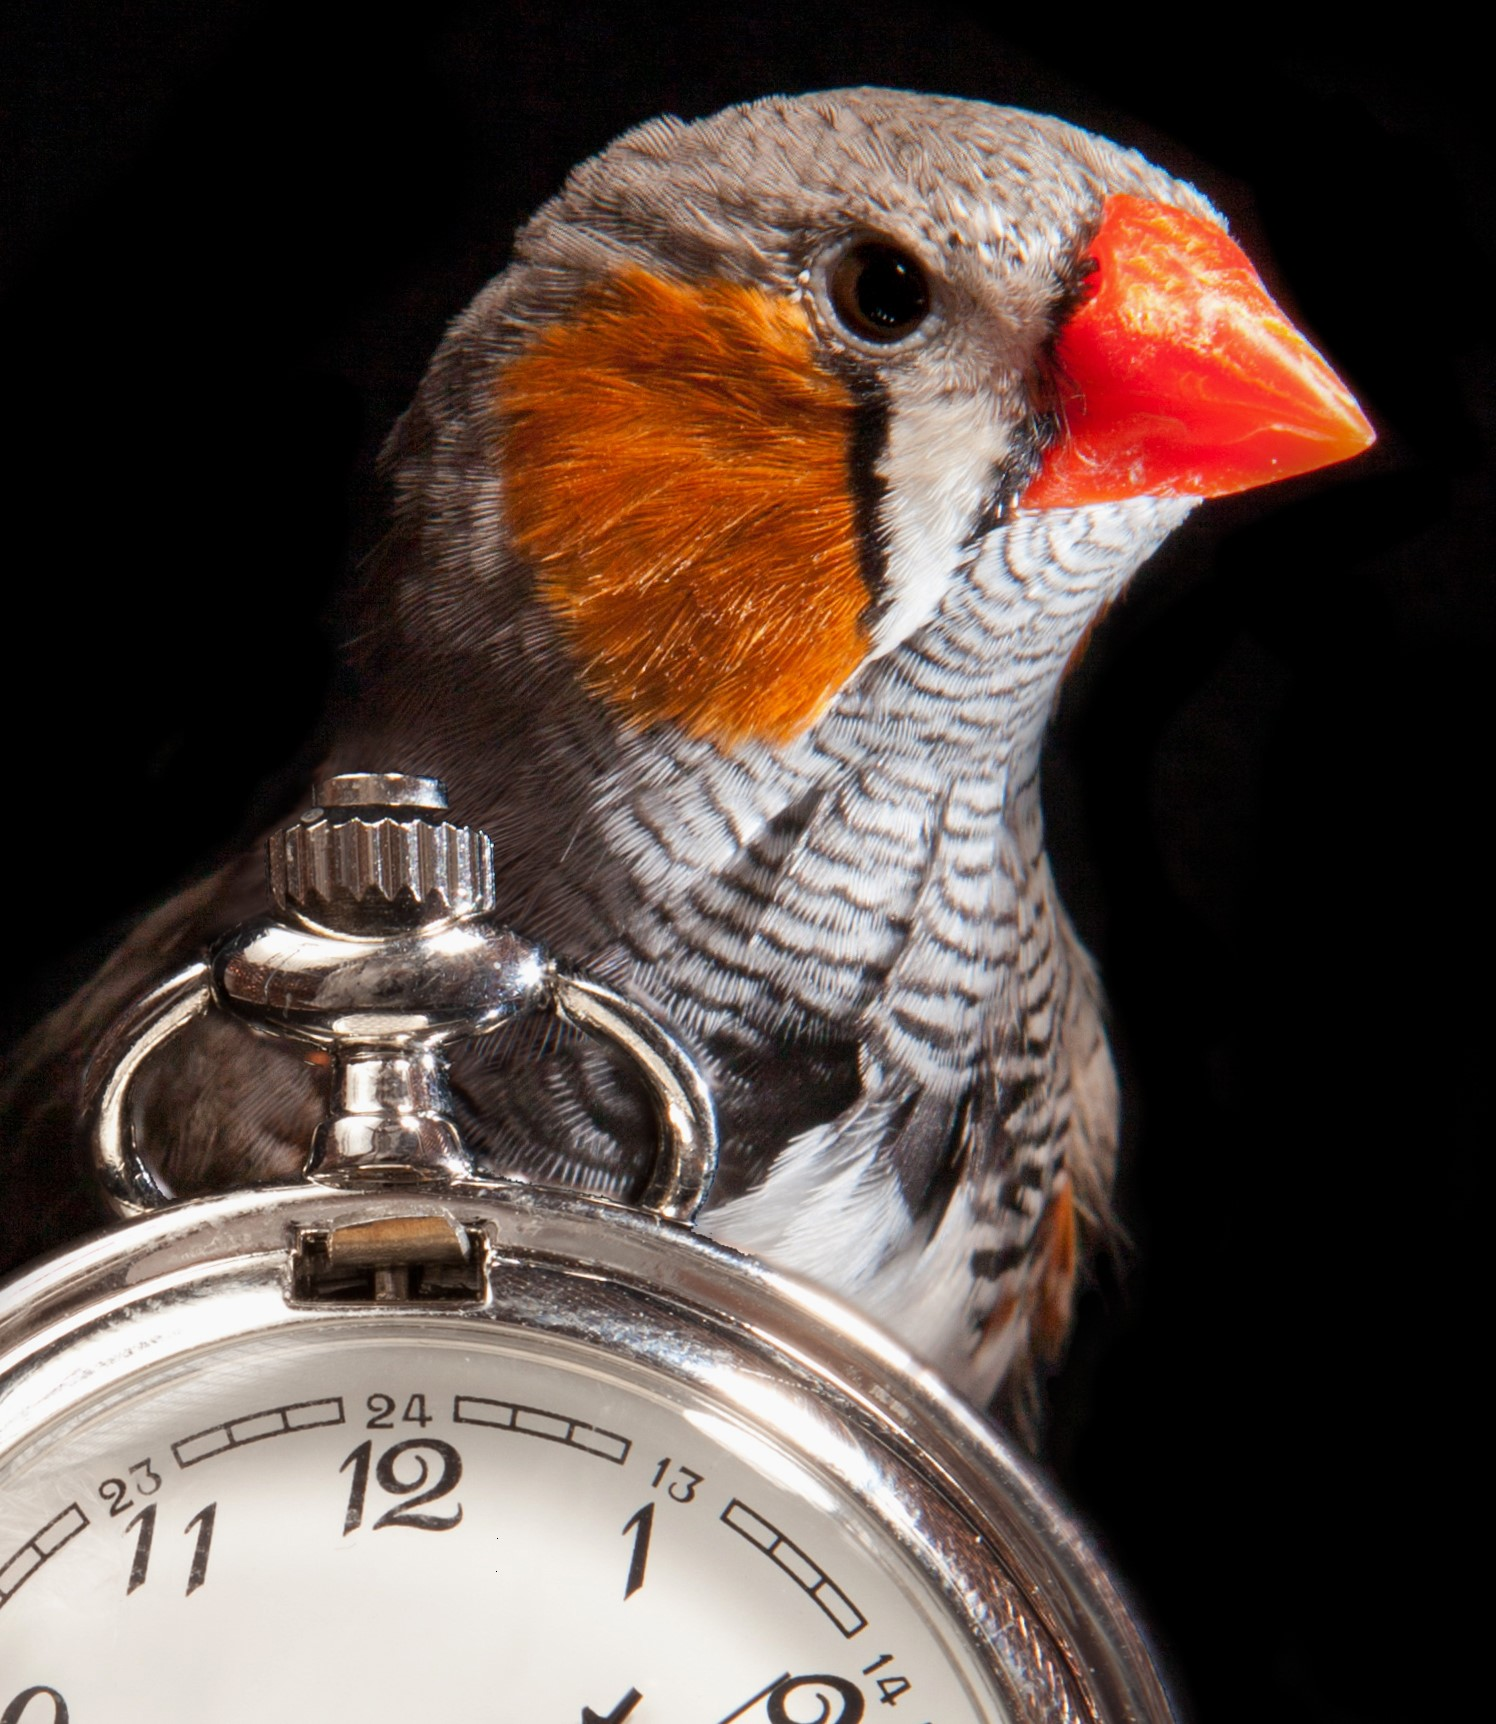 A finch stands over stopwatch